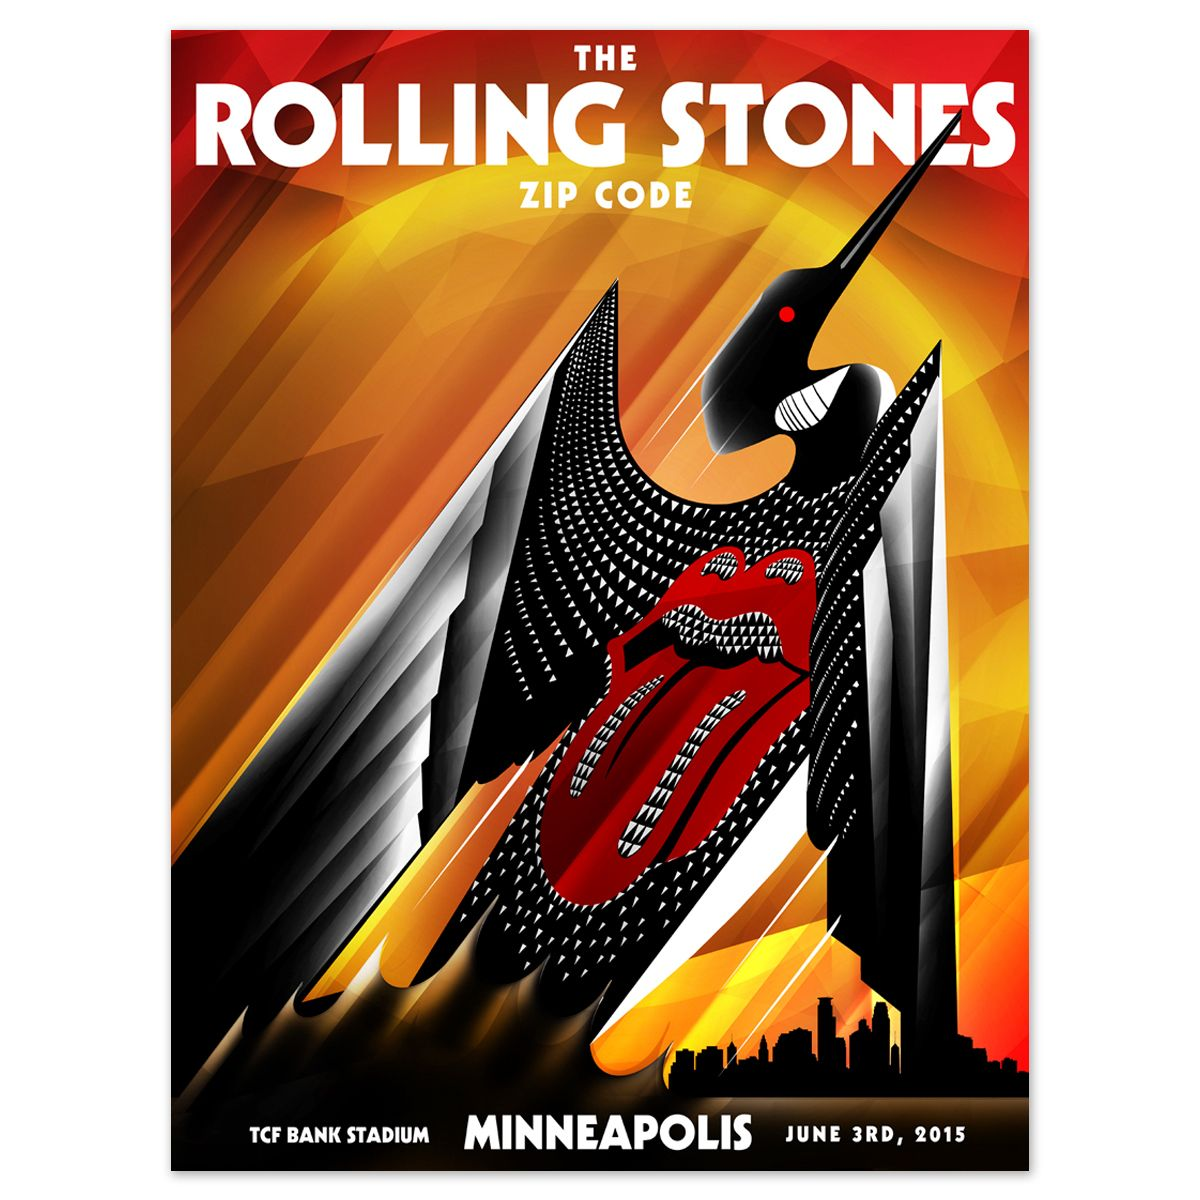 Minneapolis MN USA 3-June-2015 Rolling Stones live show